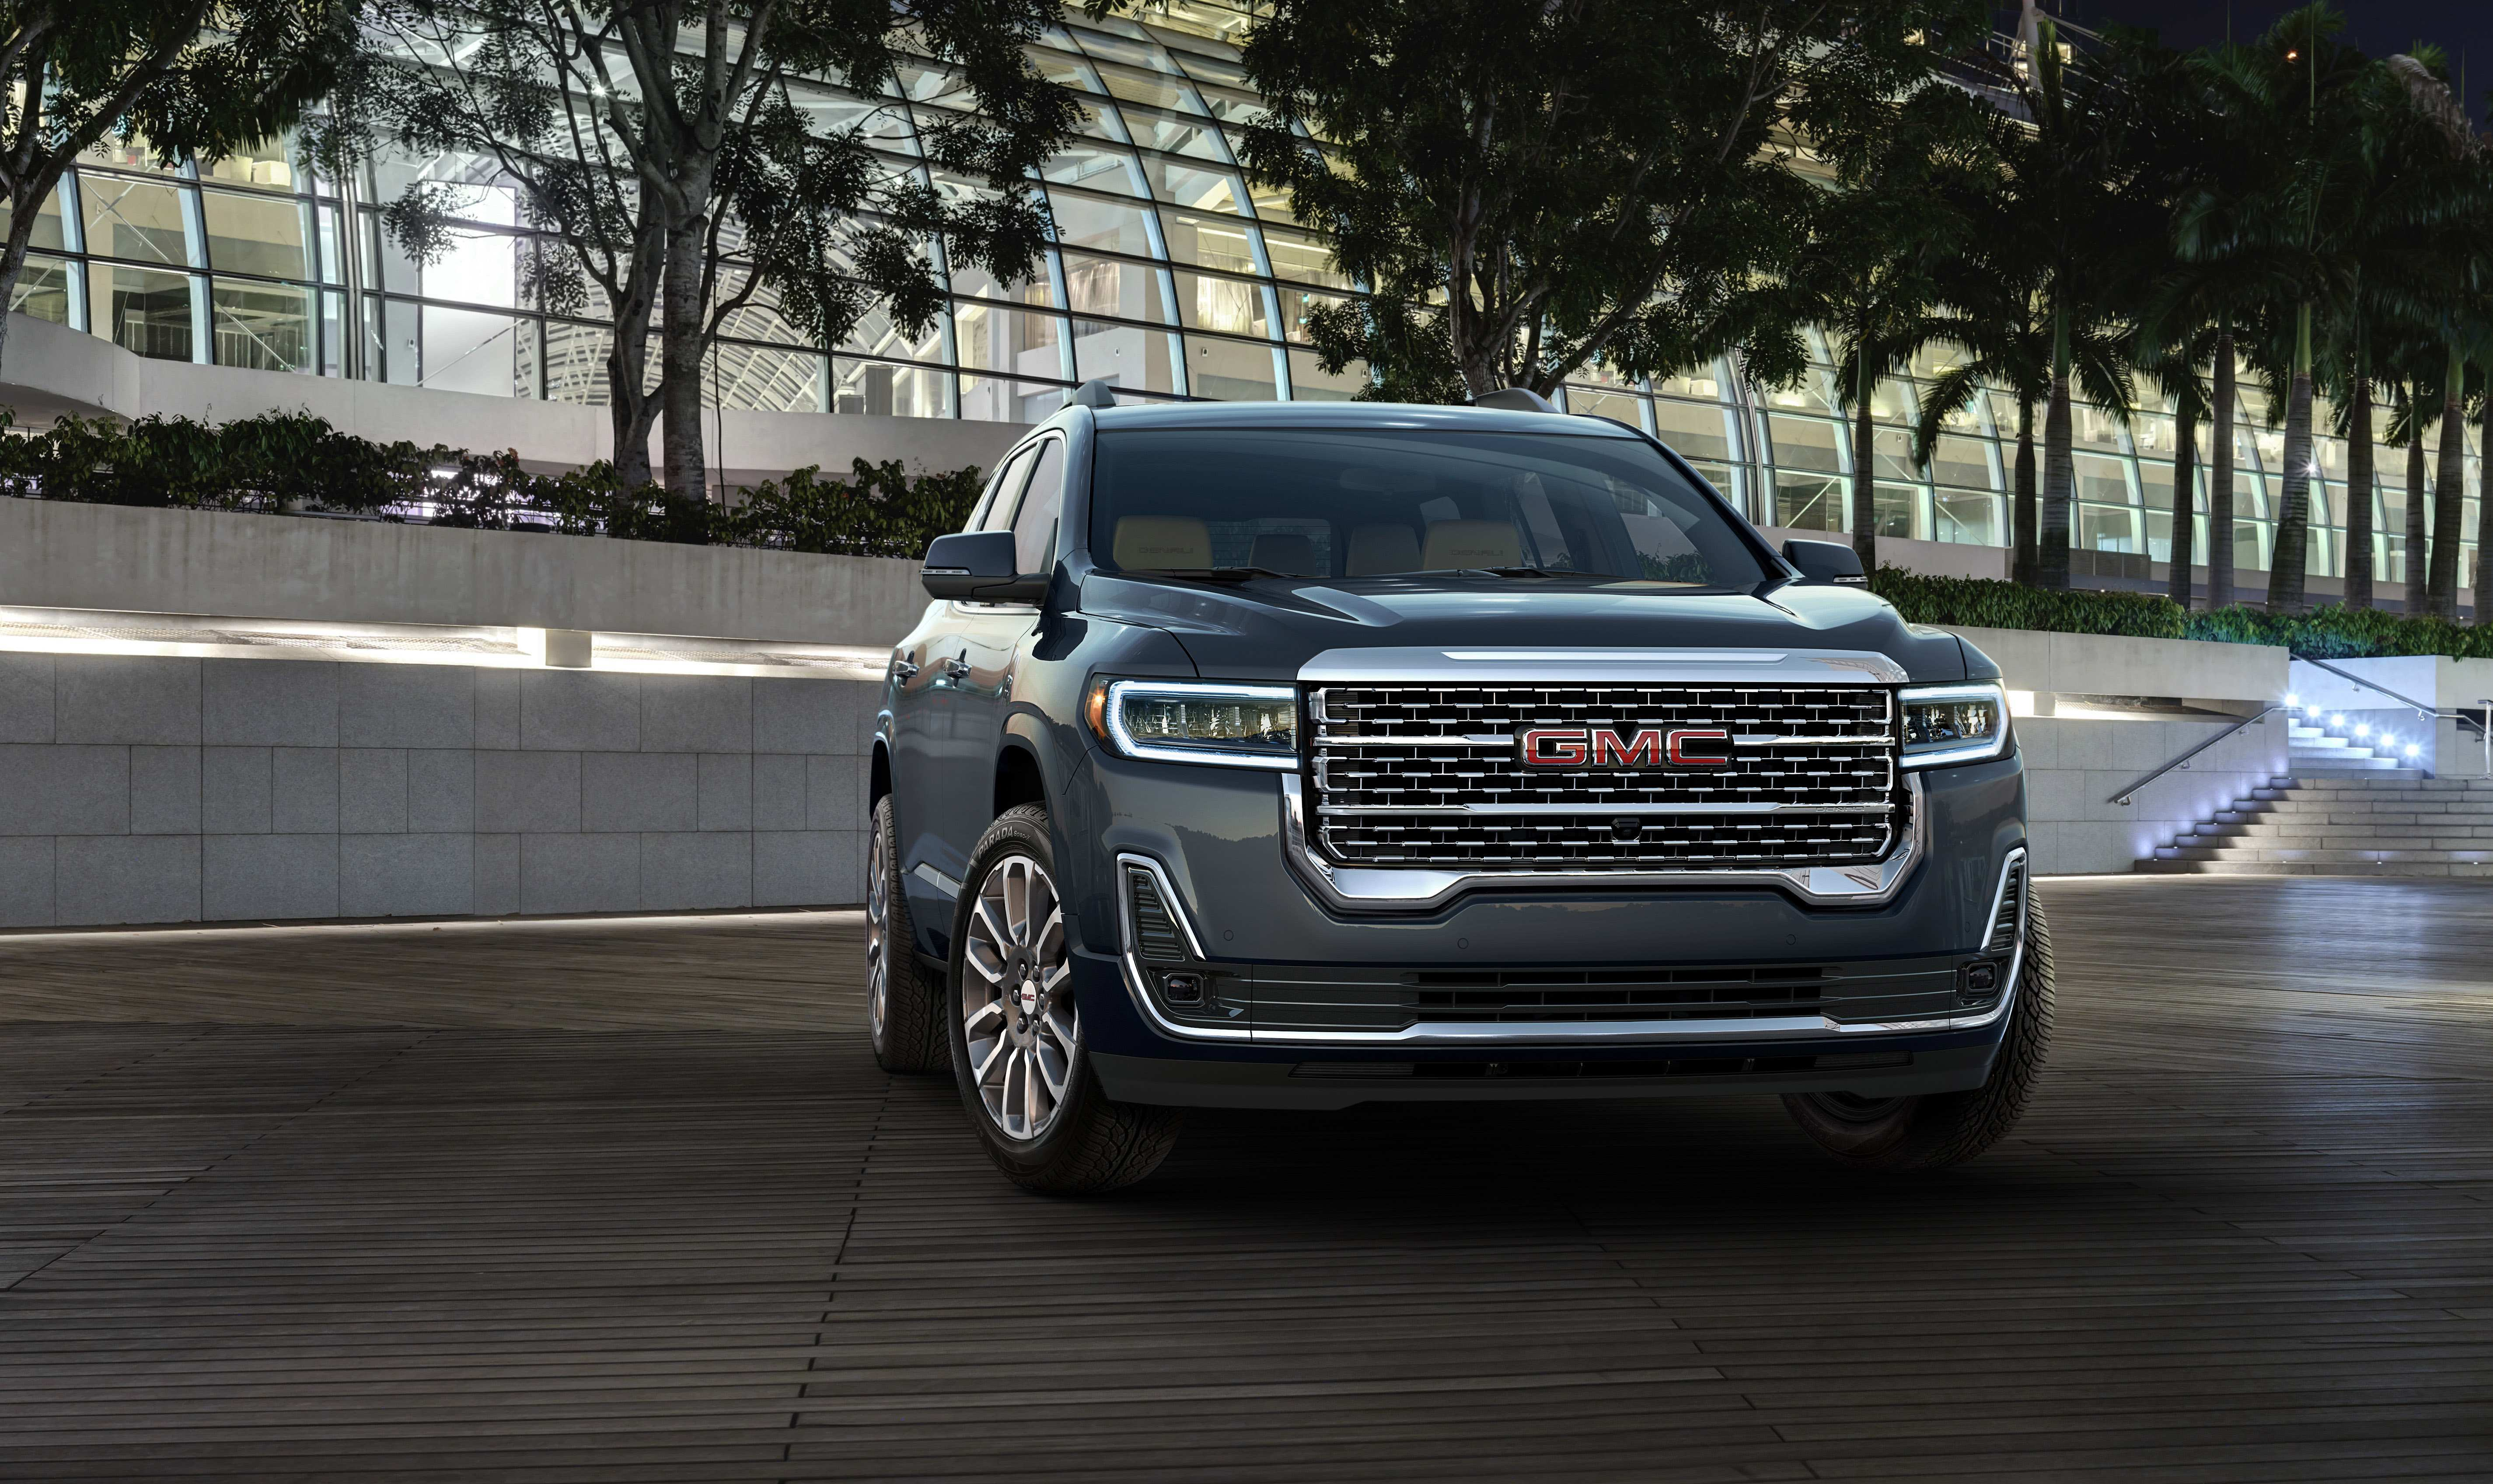 99 New Gm Chevrolet 2020 Performance and New Engine for Gm Chevrolet 2020